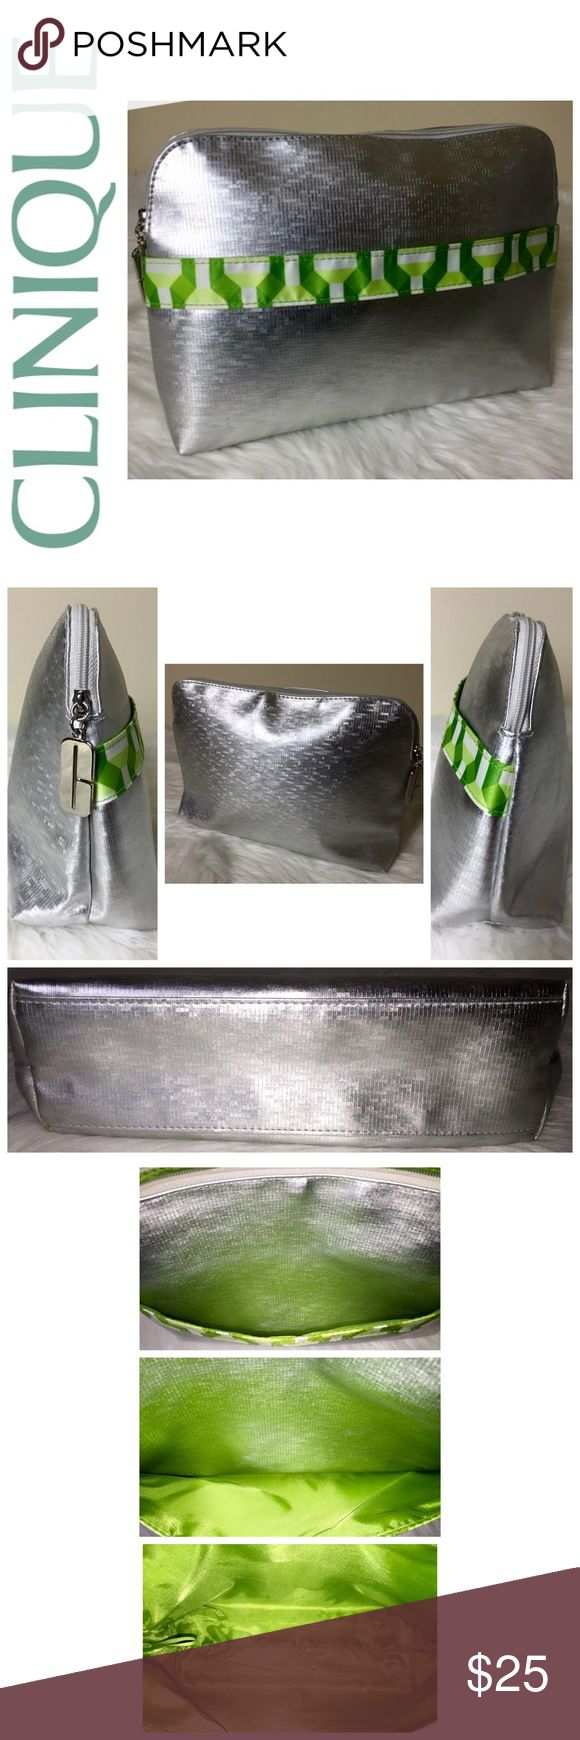 """Clinique Signature Travel Cosmetic Bag Clinique Signature Travel Cosmetic Bag, Metallic Silver with Green Color Combo Trim """"C"""" Logo Zipper Pull for Zip Top Closure, Fully Lined, Front Exterior Slip Compartment, Approx. Size is: 10""""x 7 1/4""""x 2 3/4"""", NWOT! Clinique Bags Cosmetic Bags & Cases"""